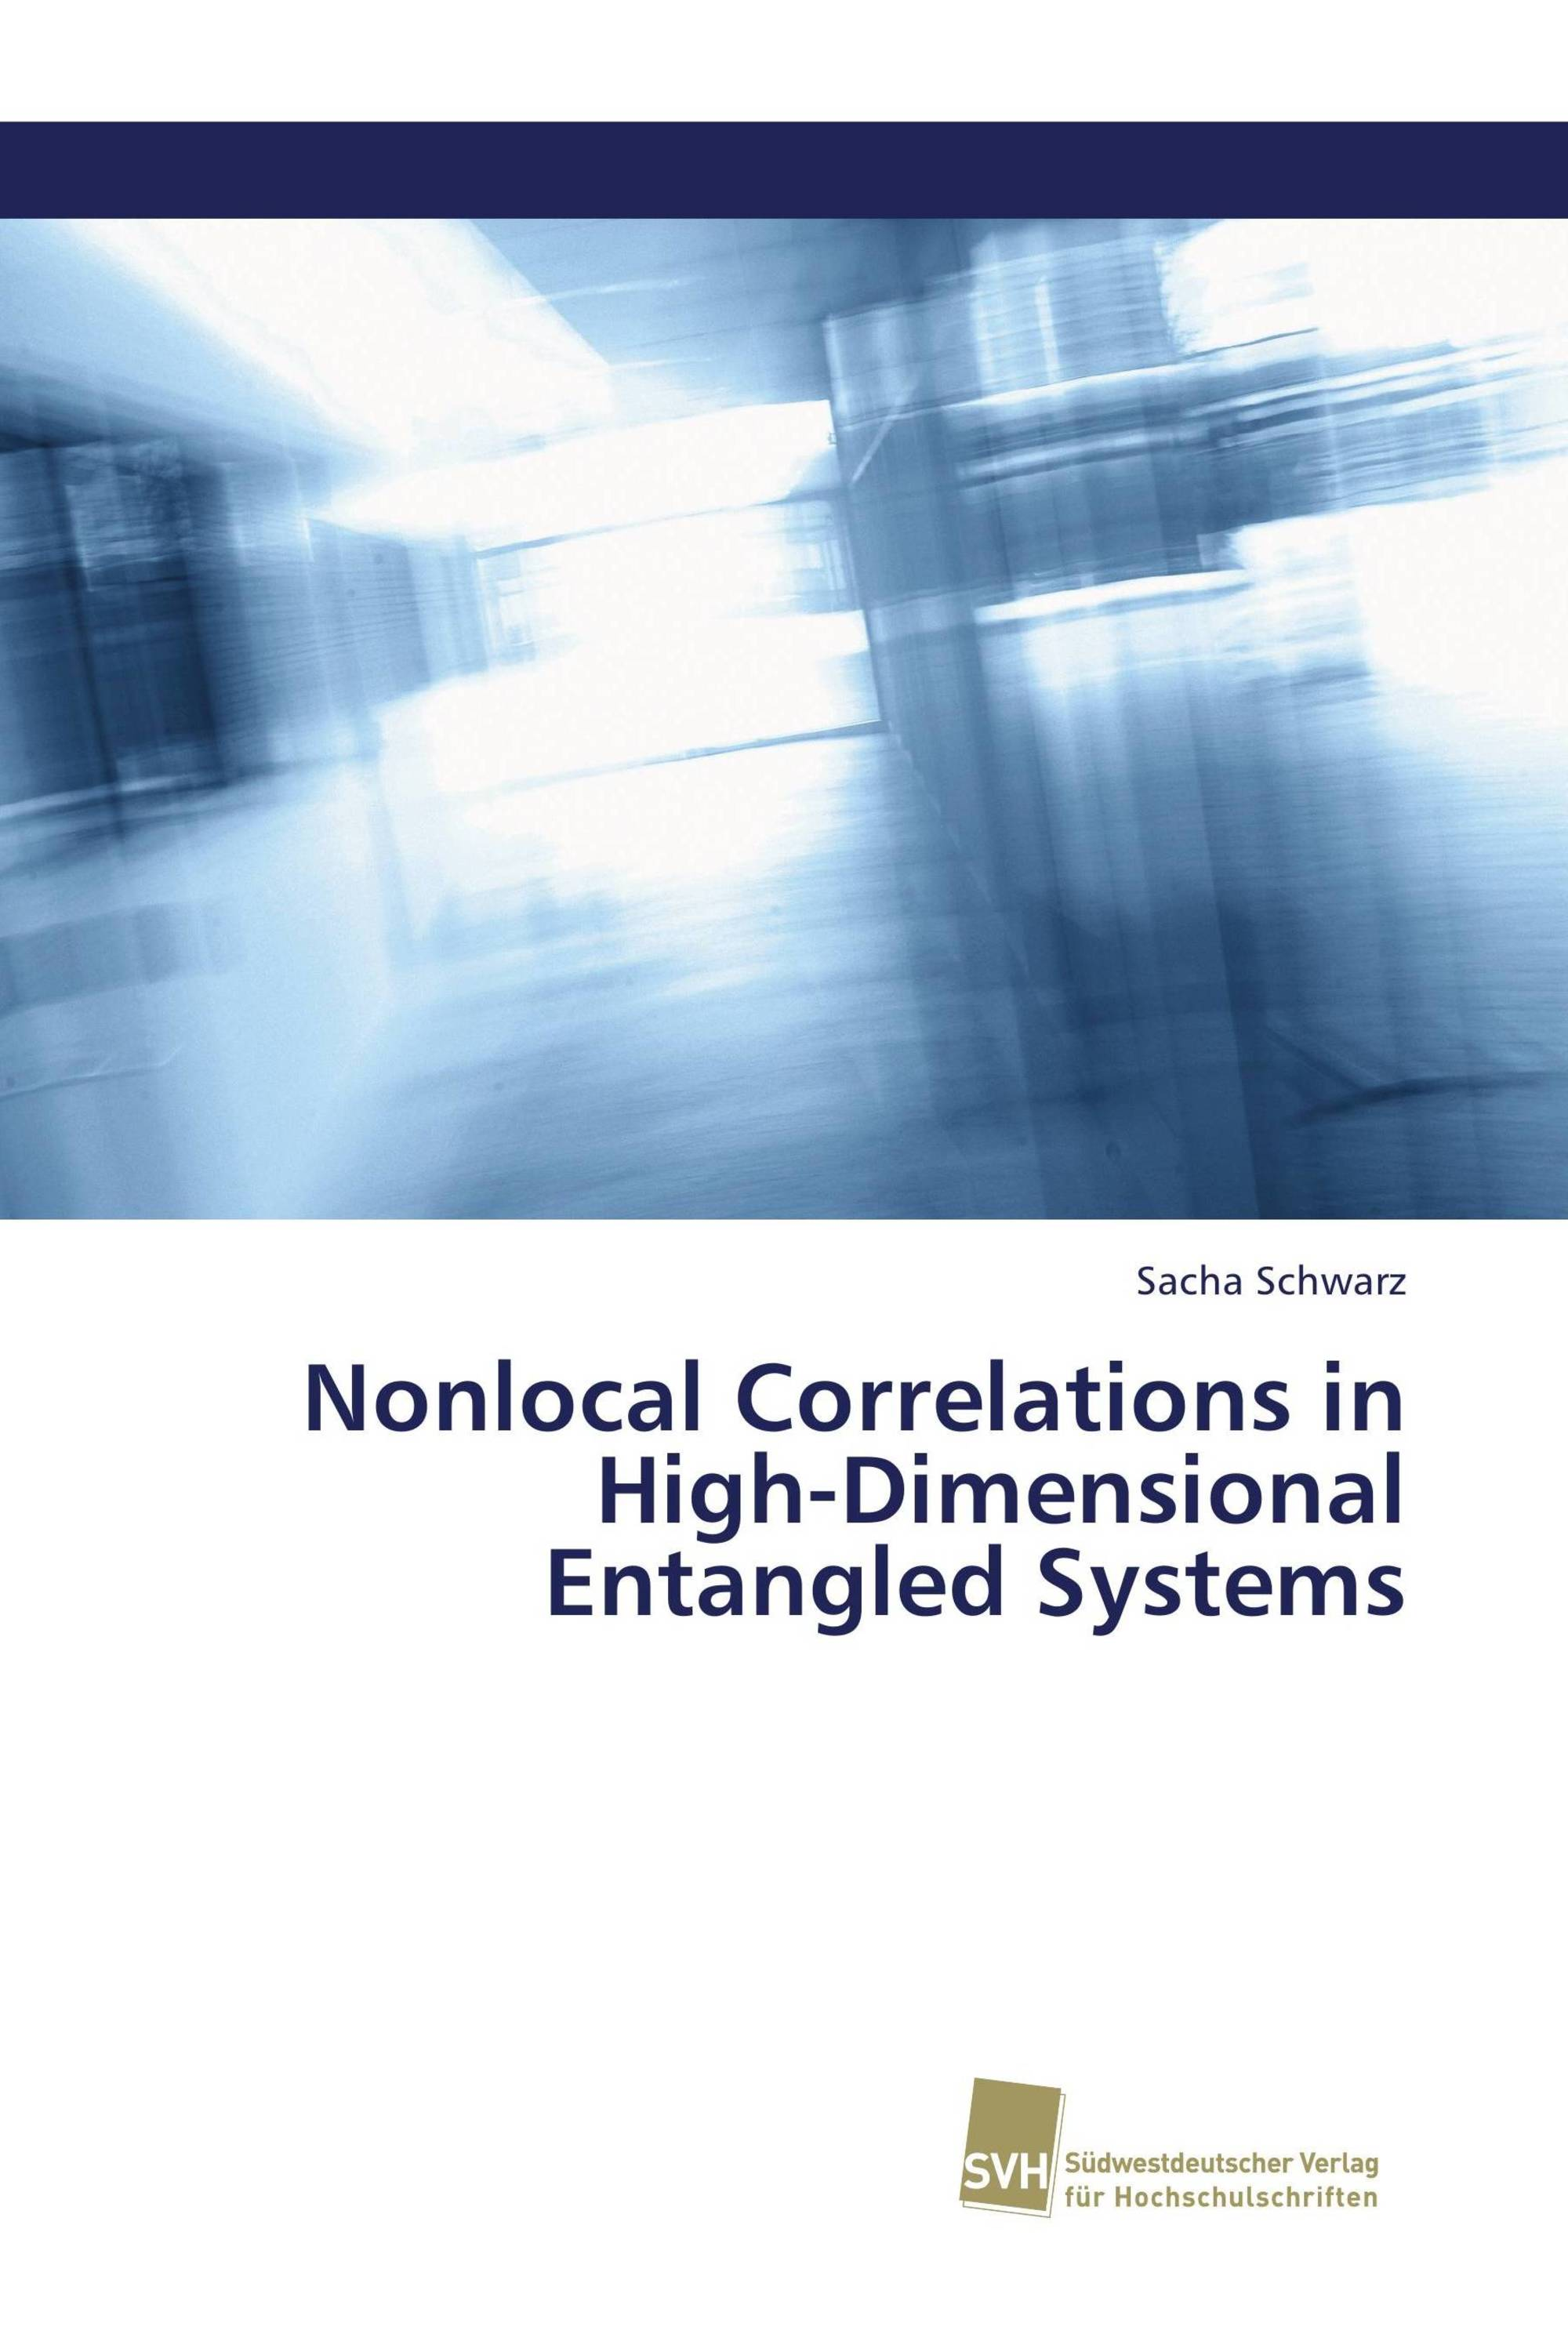 Nonlocal Correlations in High-Dimensional Entangled Systems